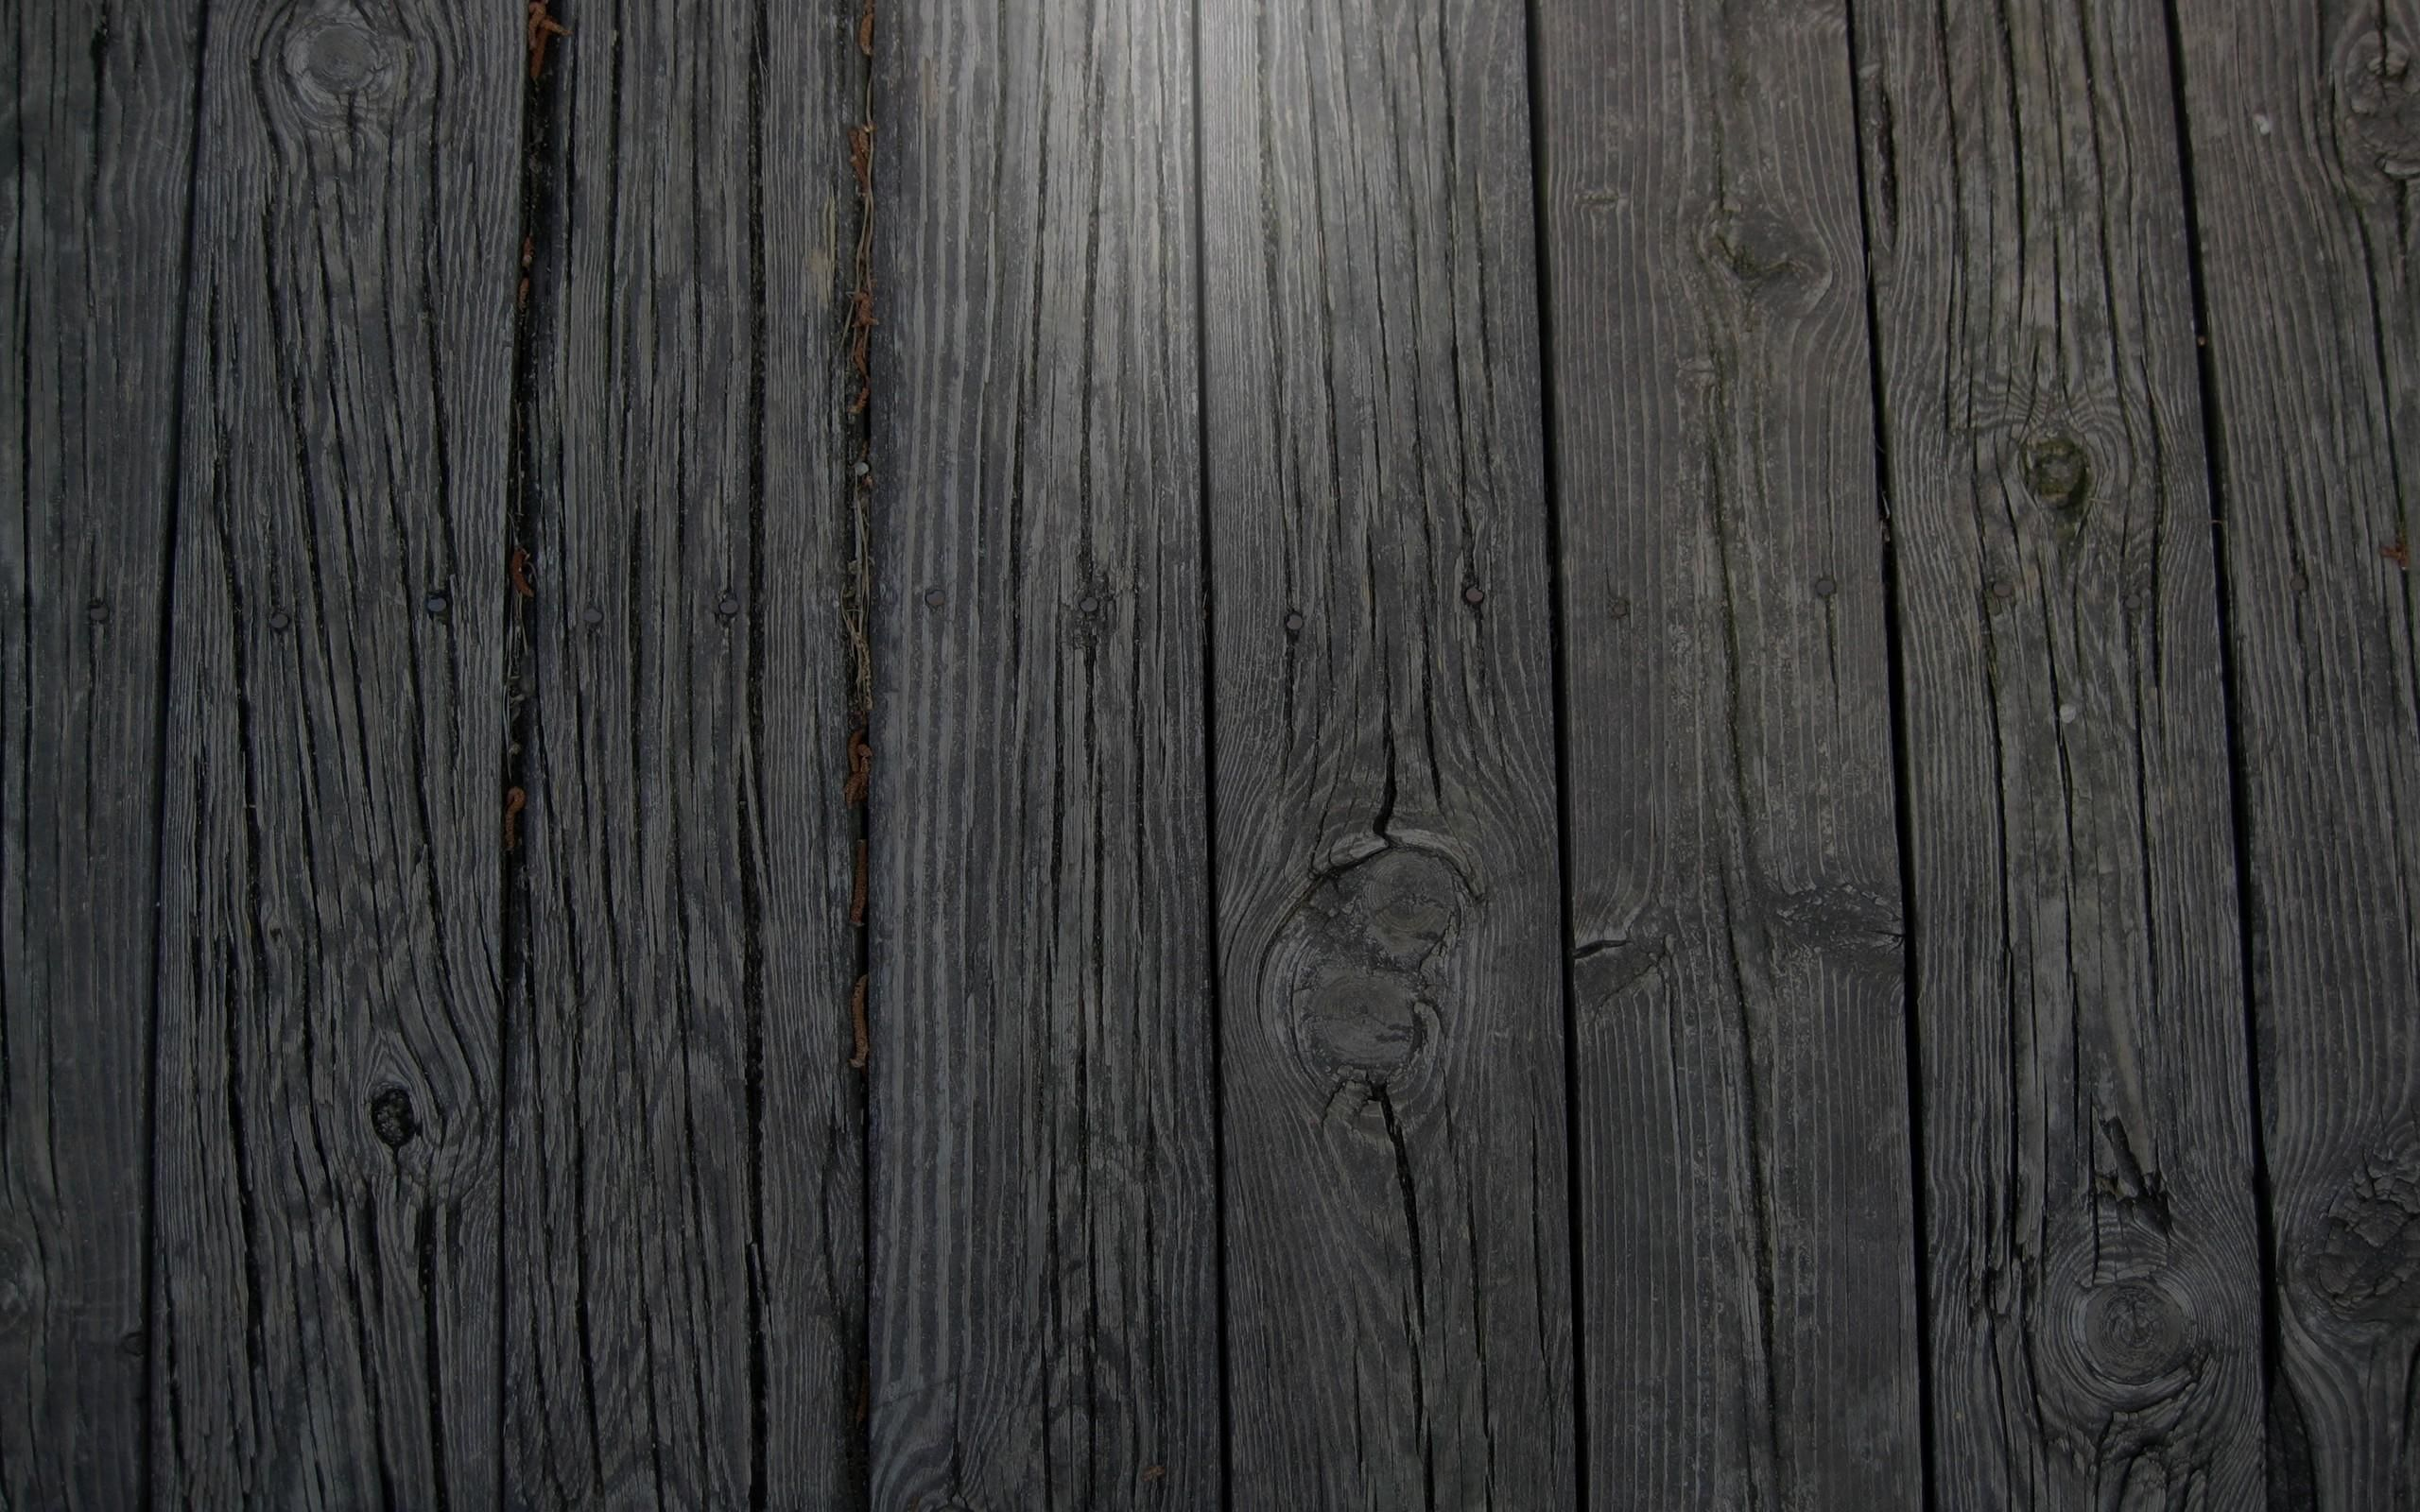 HD Wood Wallpapers For Free Download